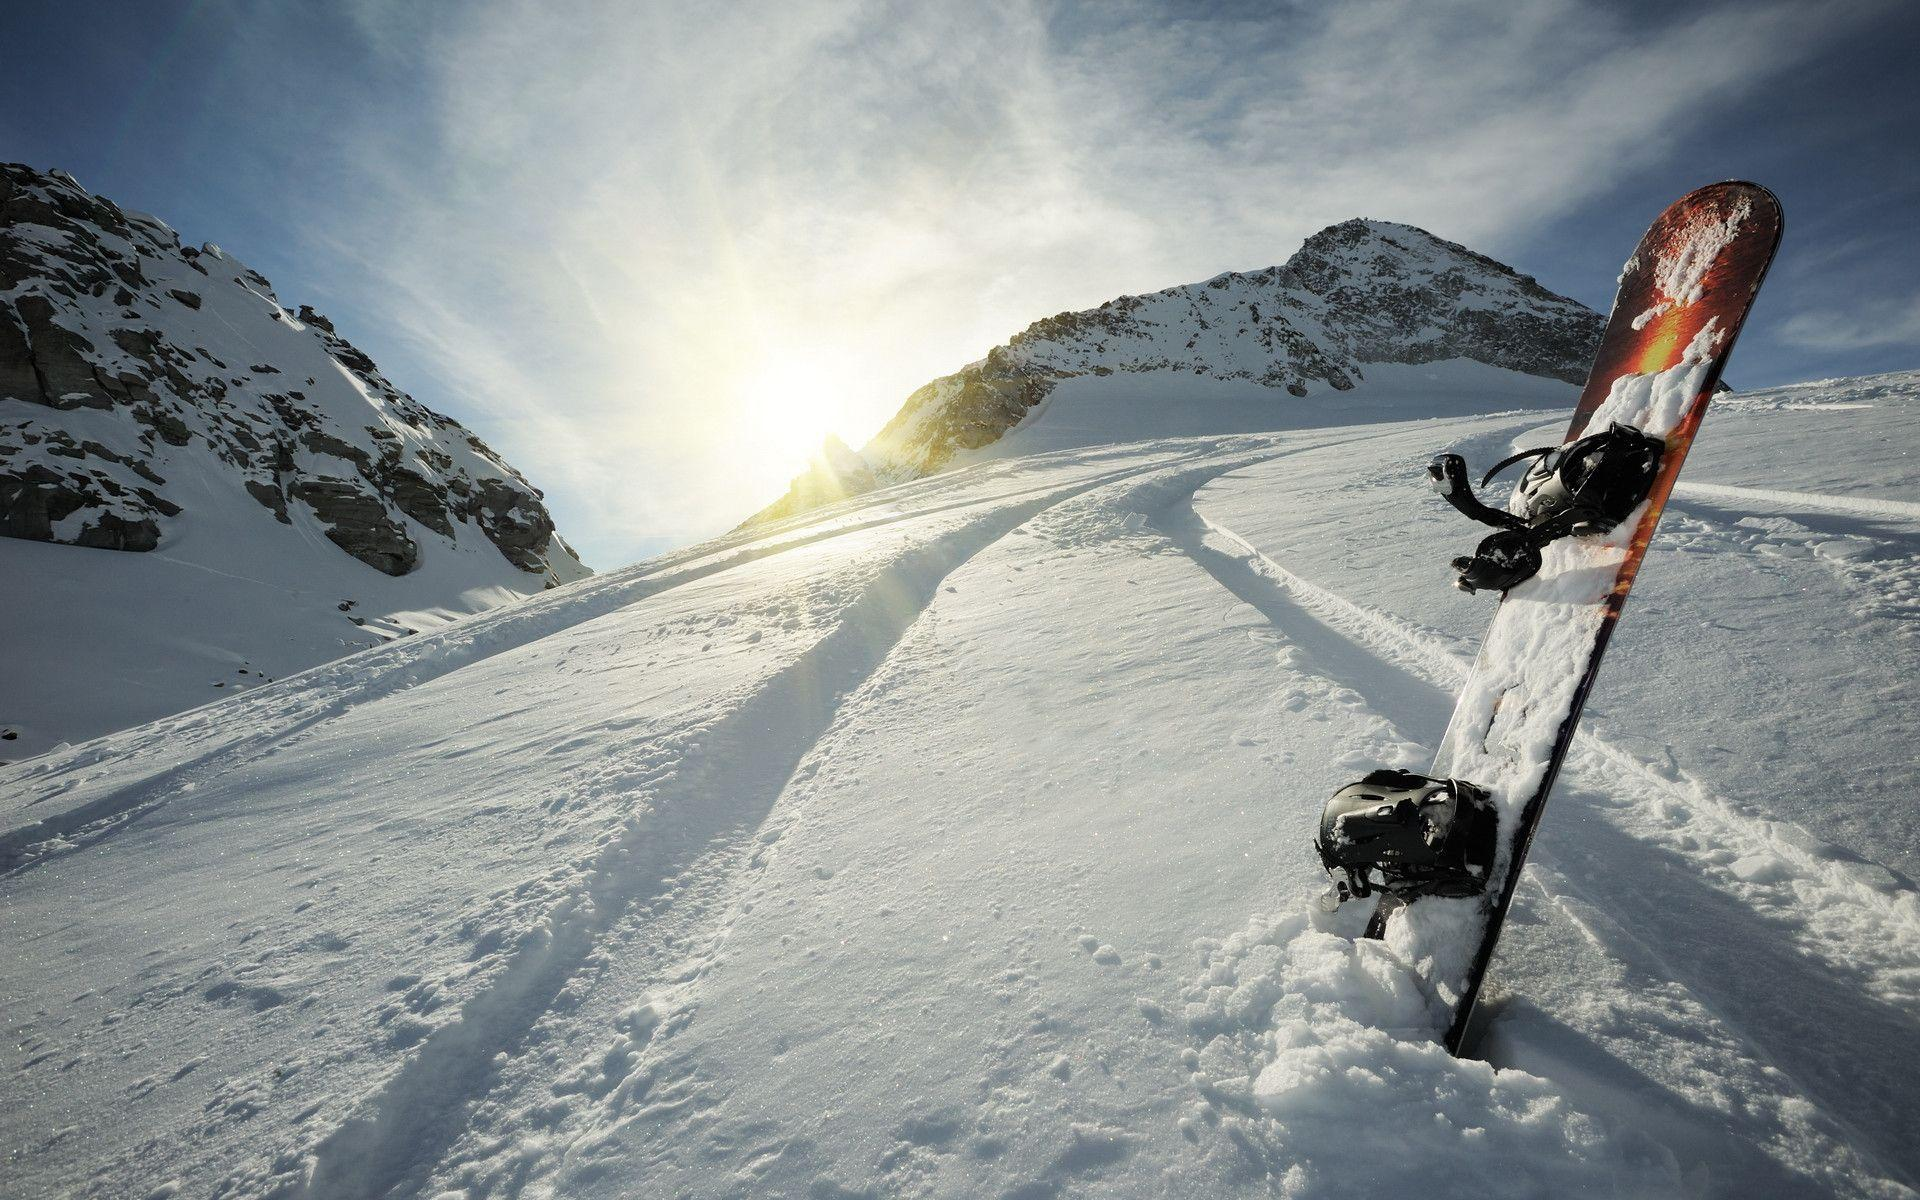 Skiing Sport Wallpaper Iphone: Snowboarding Wallpapers HD